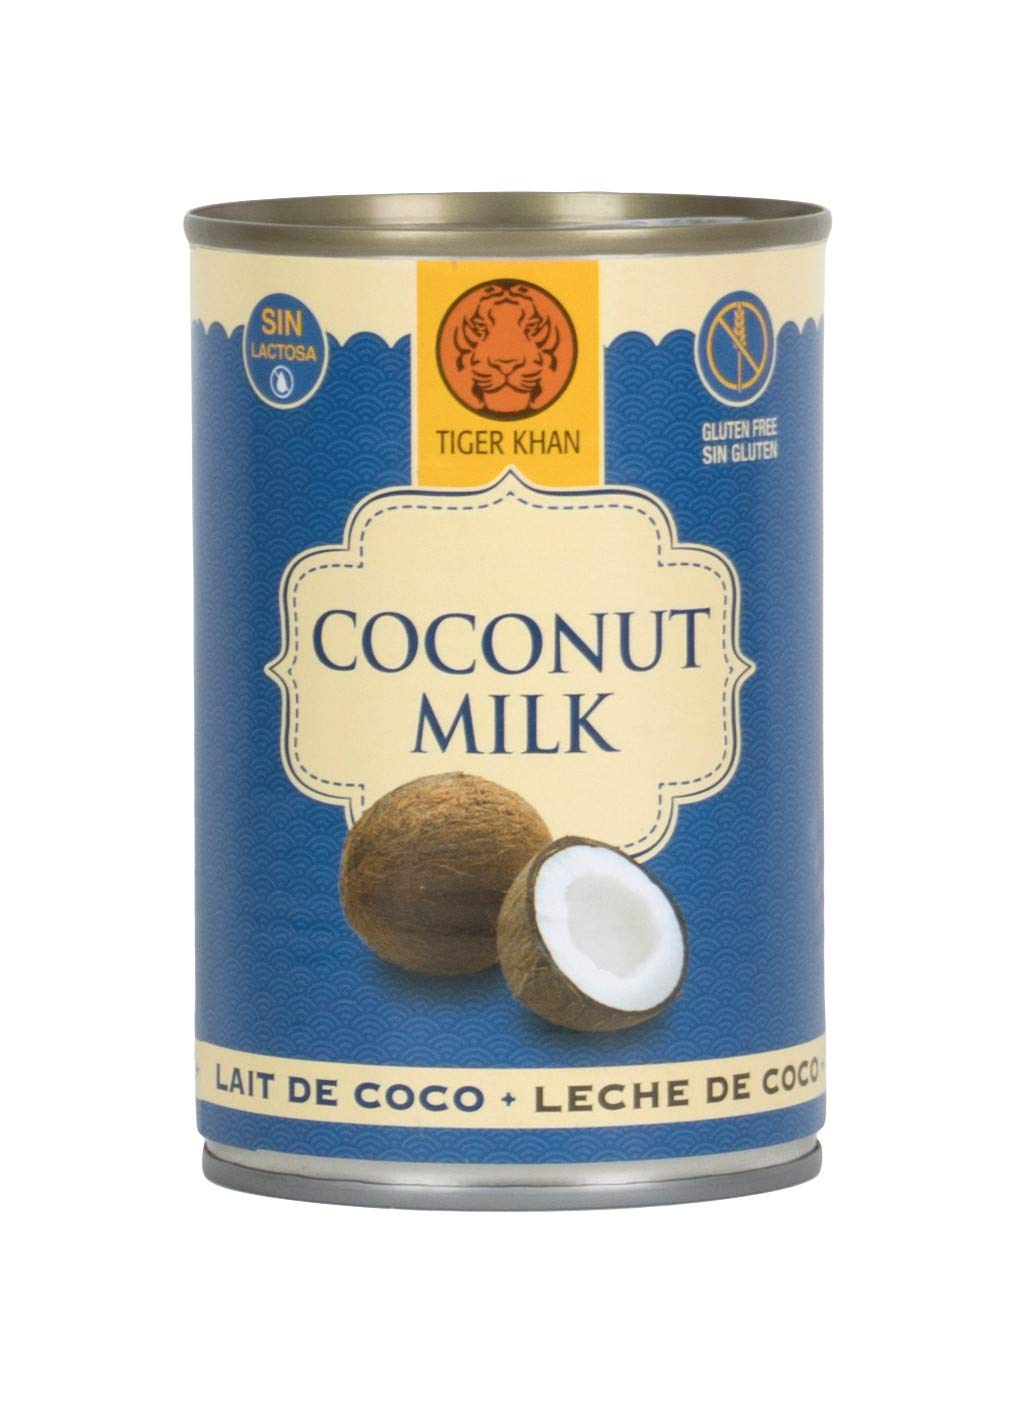 Tiger Khan Leche de Coco - 400 ml: Amazon.es: Alimentación y bebidas